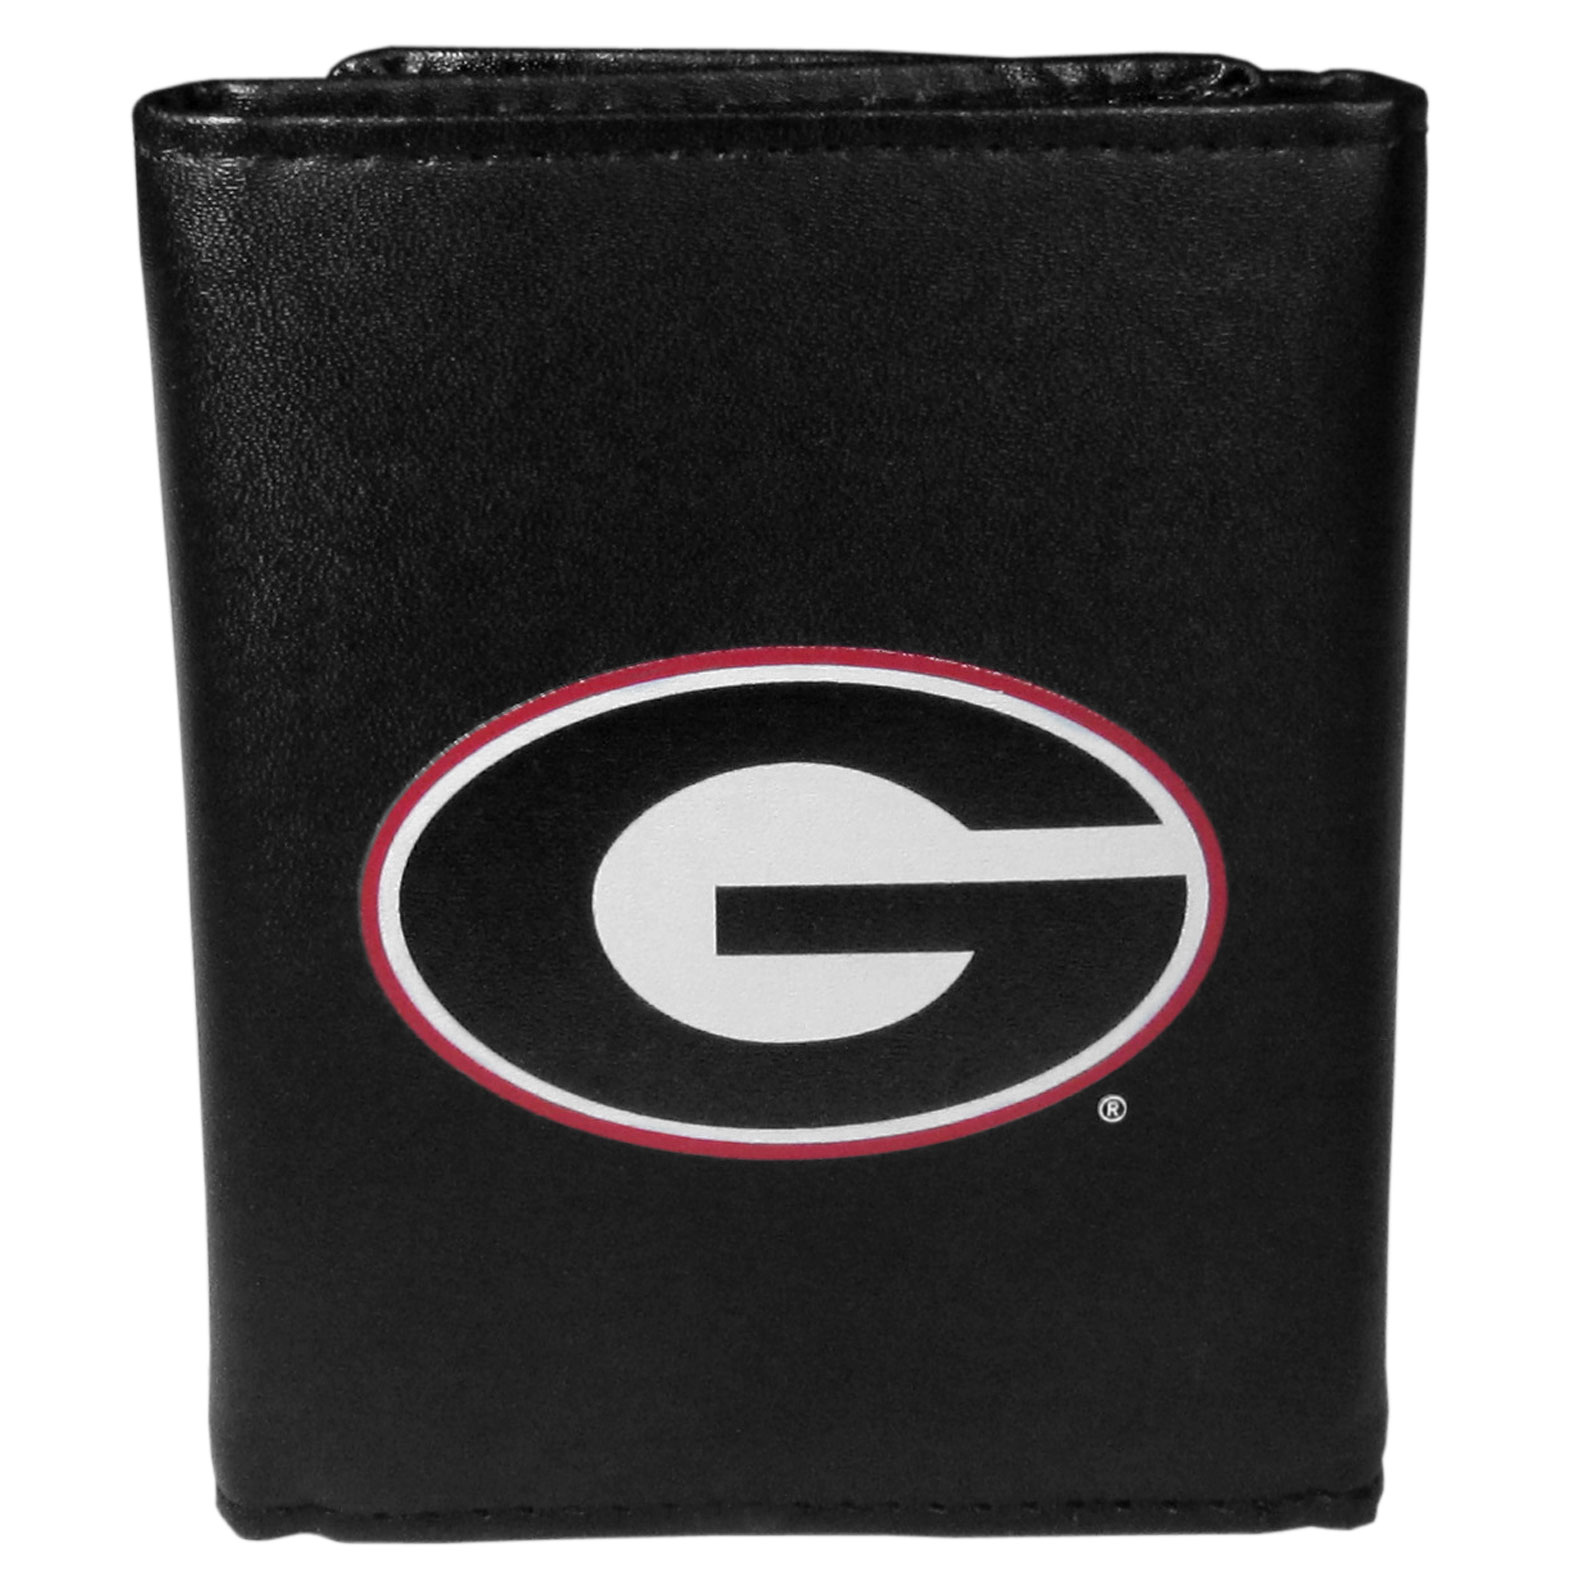 Georgia Bulldogs Leather Tri-fold Wallet, Large Logo - Our classic fine leather tri-fold wallet is meticulously crafted with genuine leather that will age beautifully so you will have a quality wallet for years to come. This is fan apparel at its finest. The wallet is packed with organizational  features; lots of credit card slots, large billfold pocket, and a window ID slot. The front of the wallet features an extra large Georgia Bulldogs printed logo.